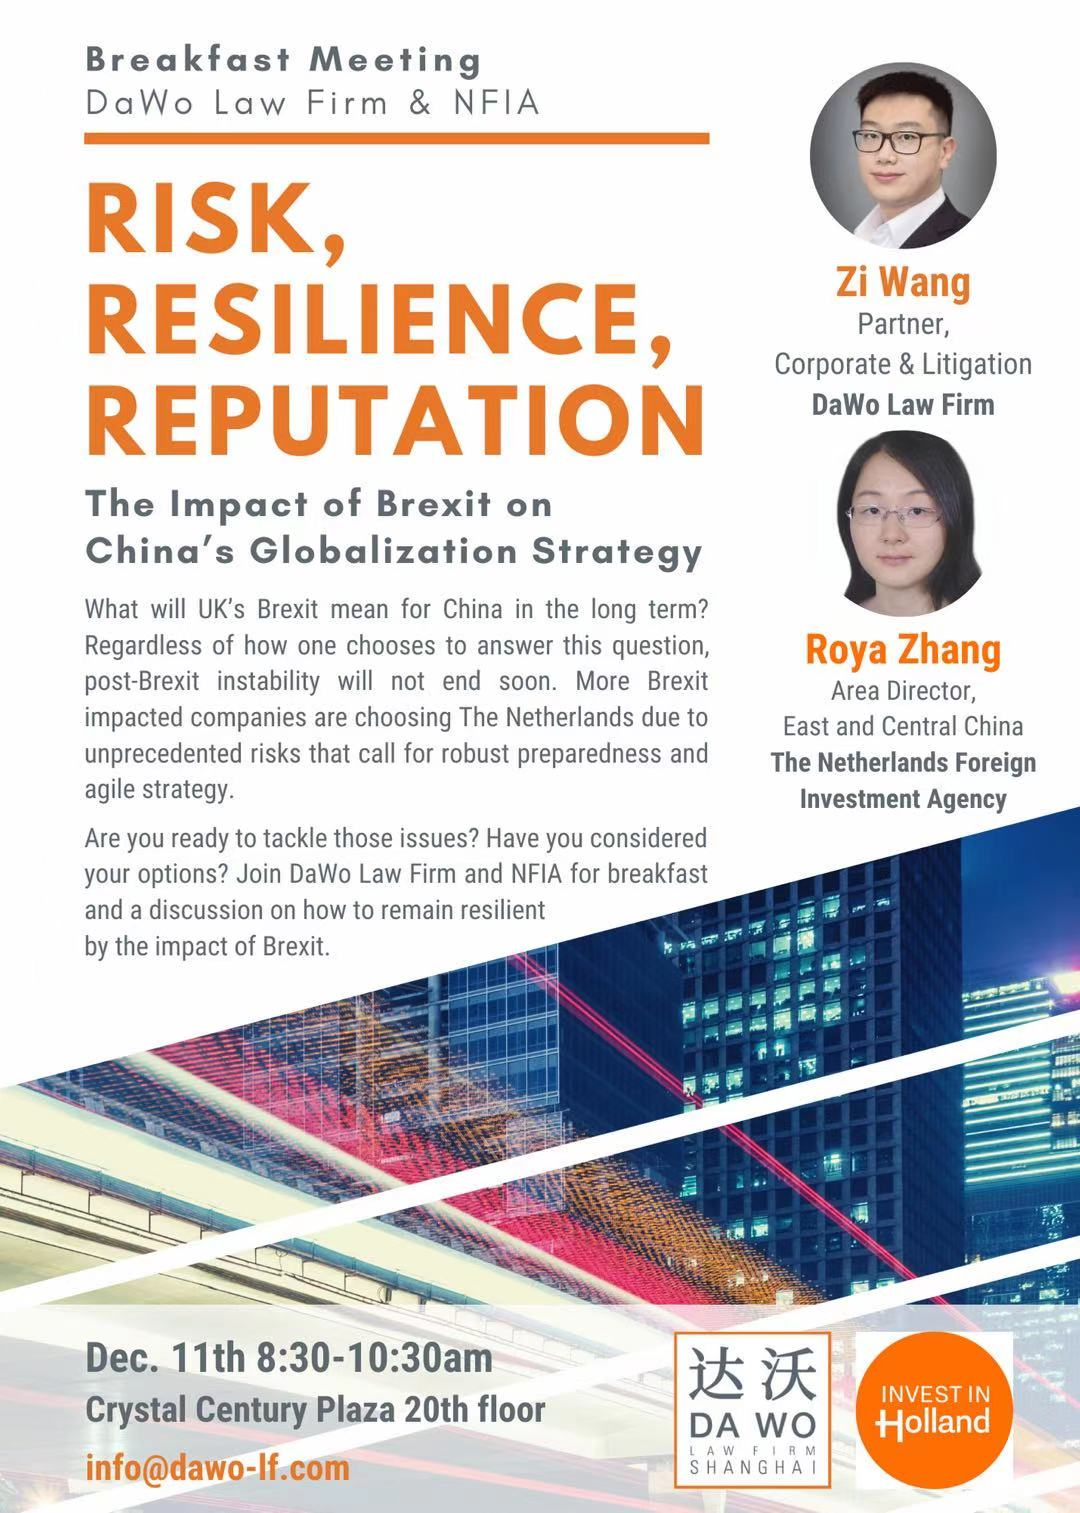 RRR: The Impact of Brexit on China's Globalization Strategy (Dec. 11th)